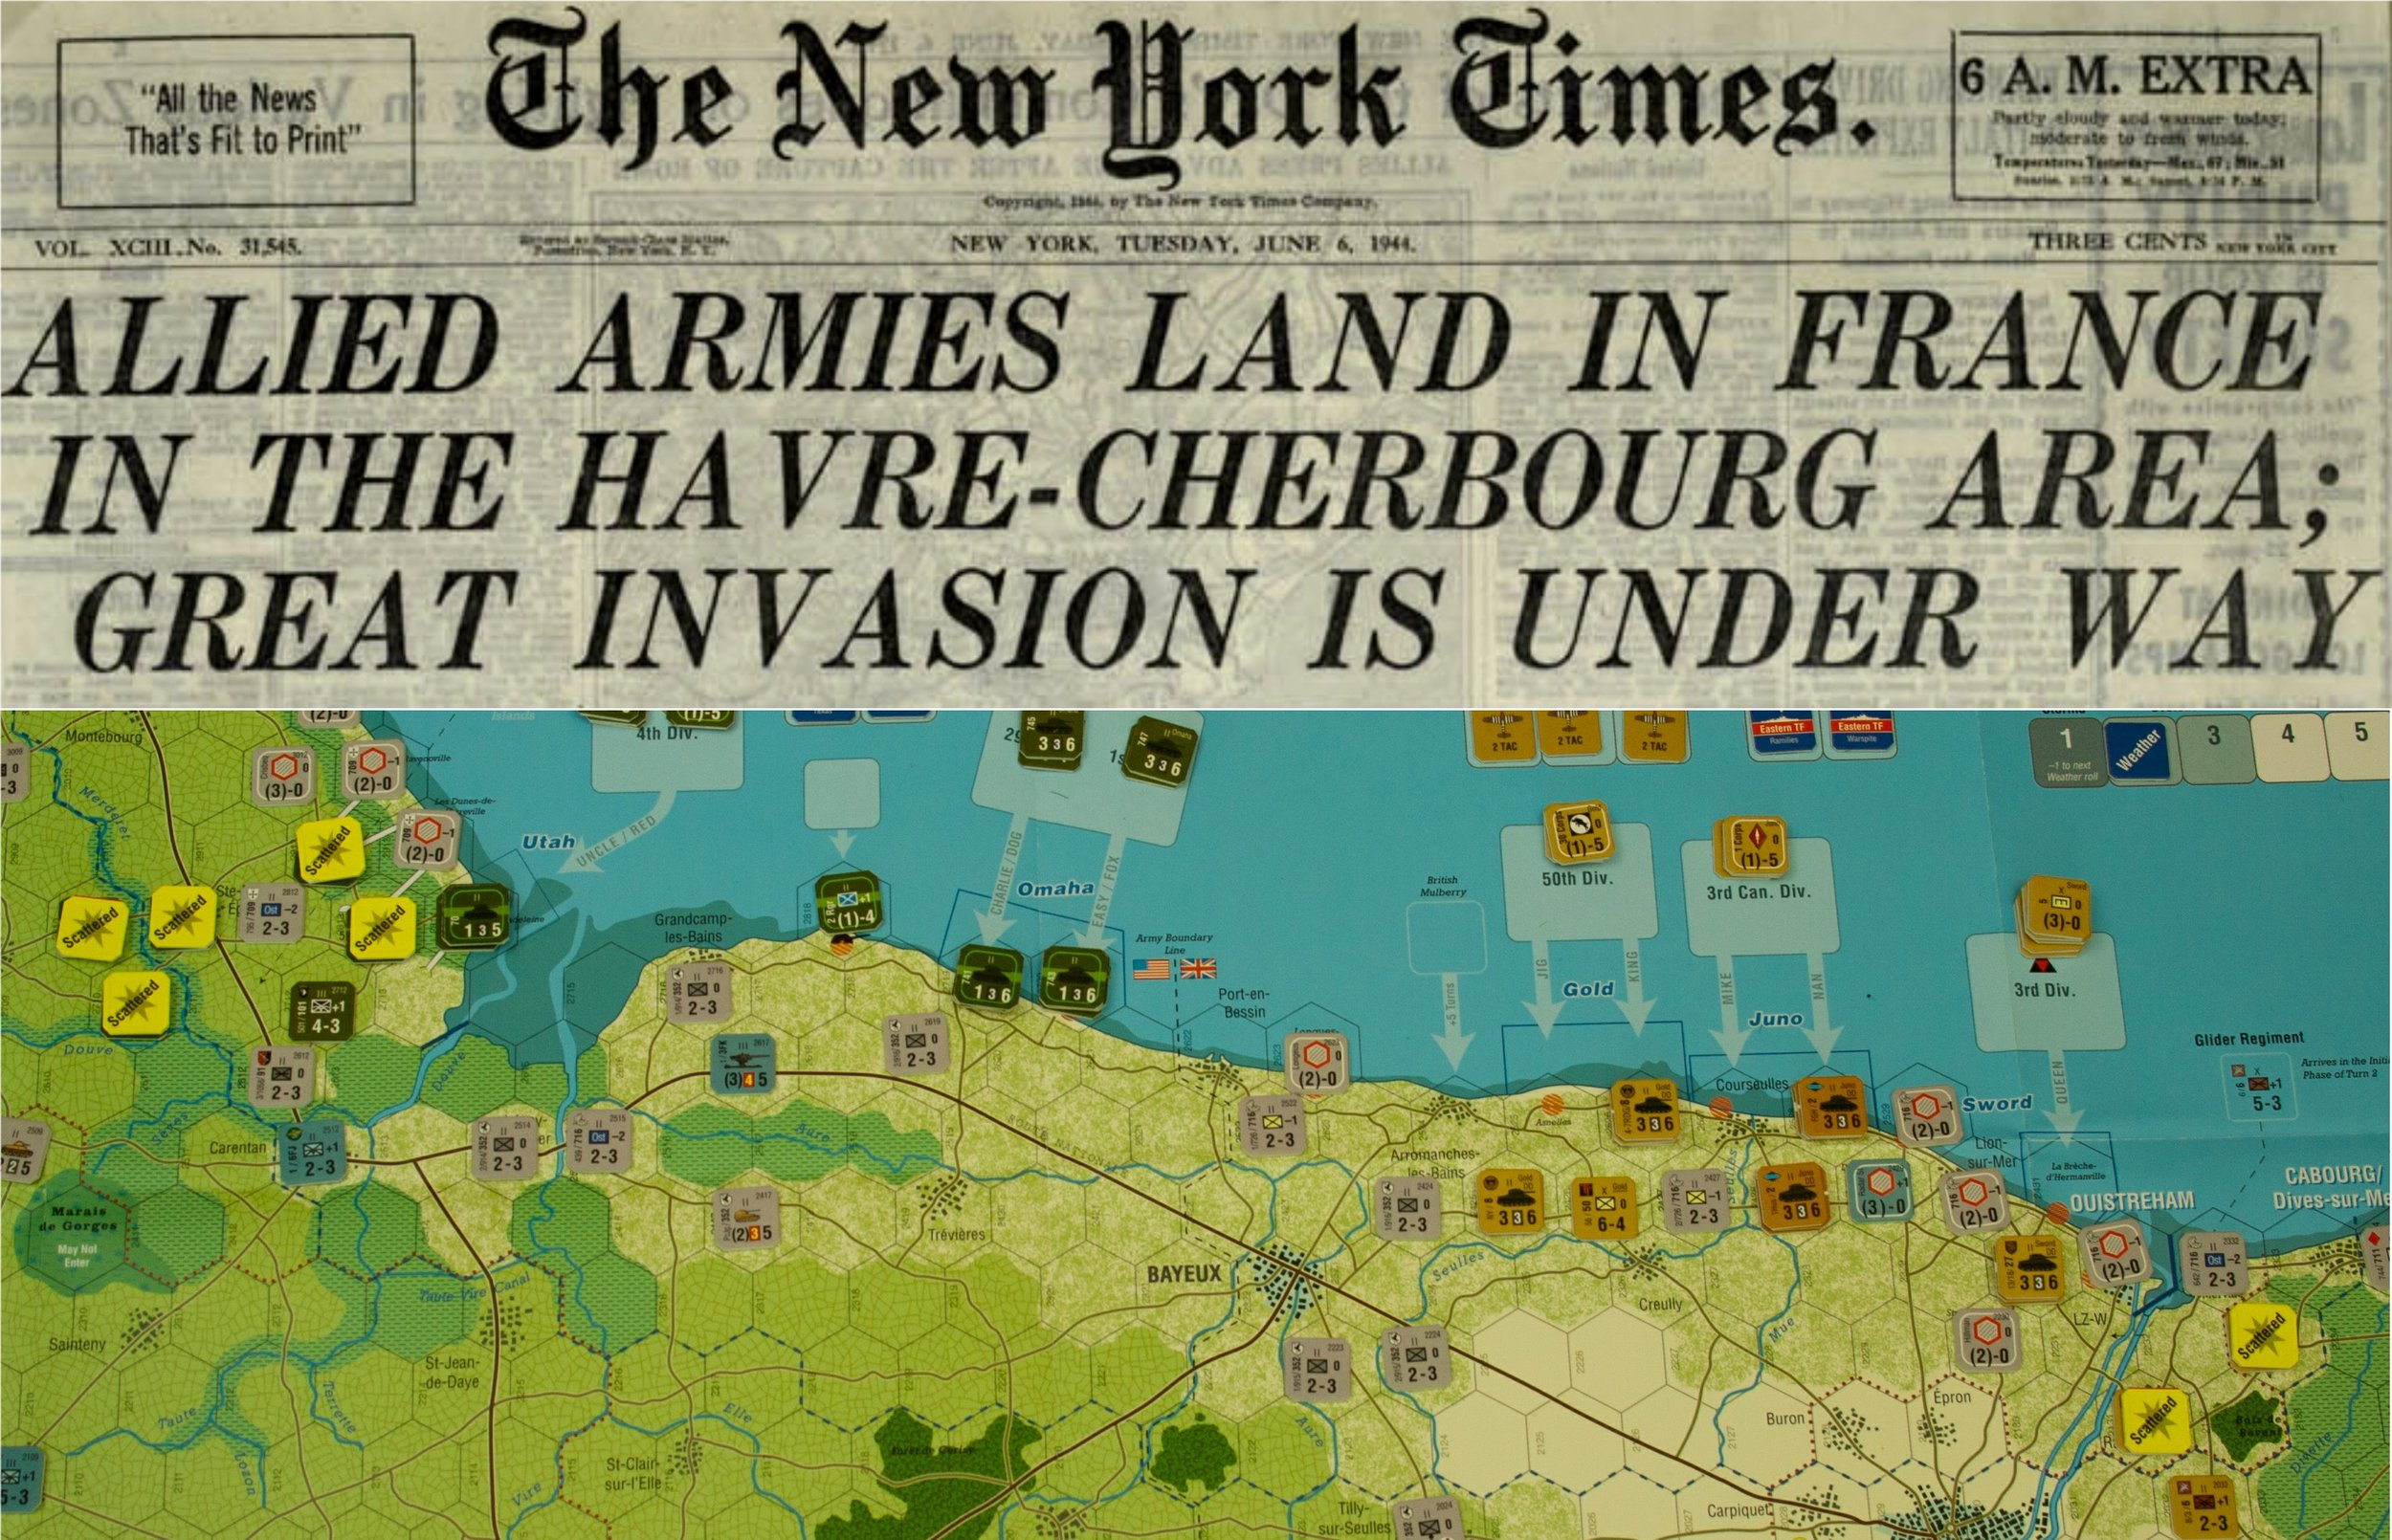 MT Normandy '44 - Game on the Allied Invasion of Normandy, June 1944. The picture links the headlines from the June 6th Late edition of the New York Times with the game immediately after the initial invasion sequence - one of many possible situations  by  Michael Arrighi